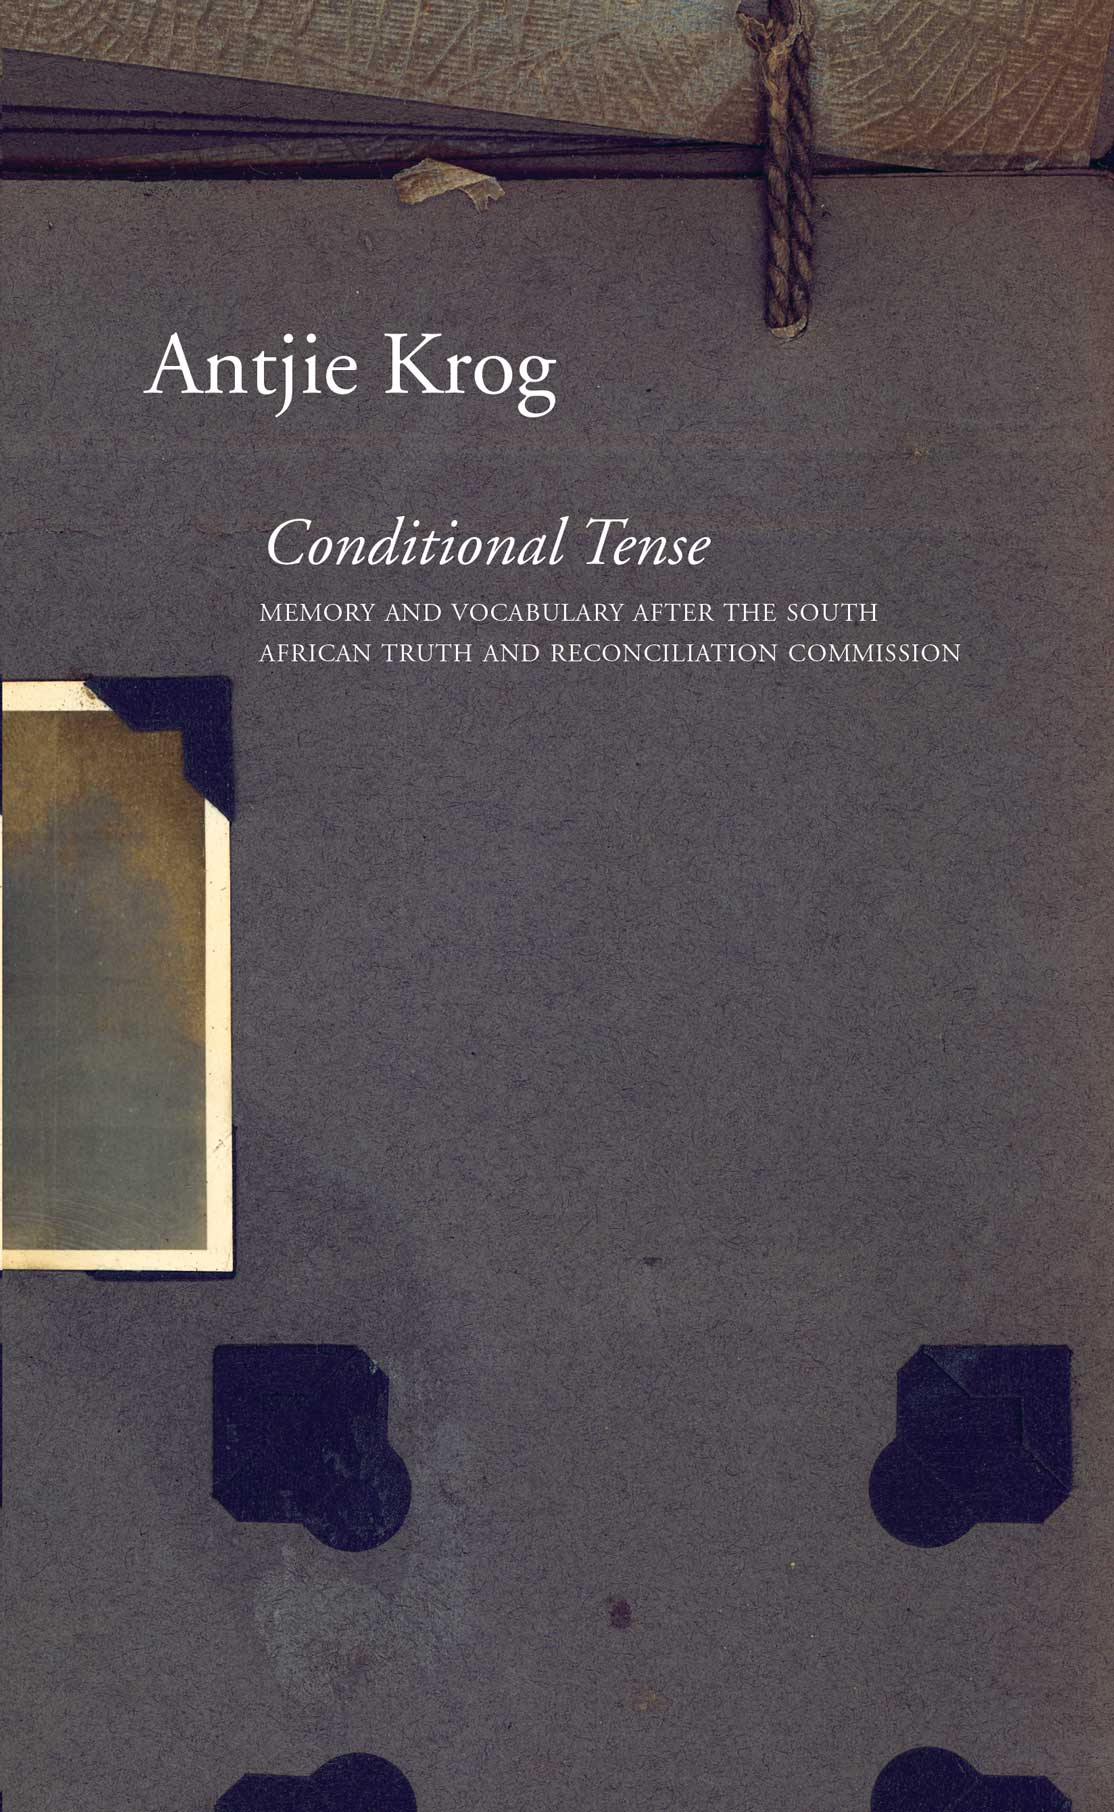 Conditional Tense : After the South African Truth and Reconciliation Commission   by Antjie Krog  |  Seagull Books